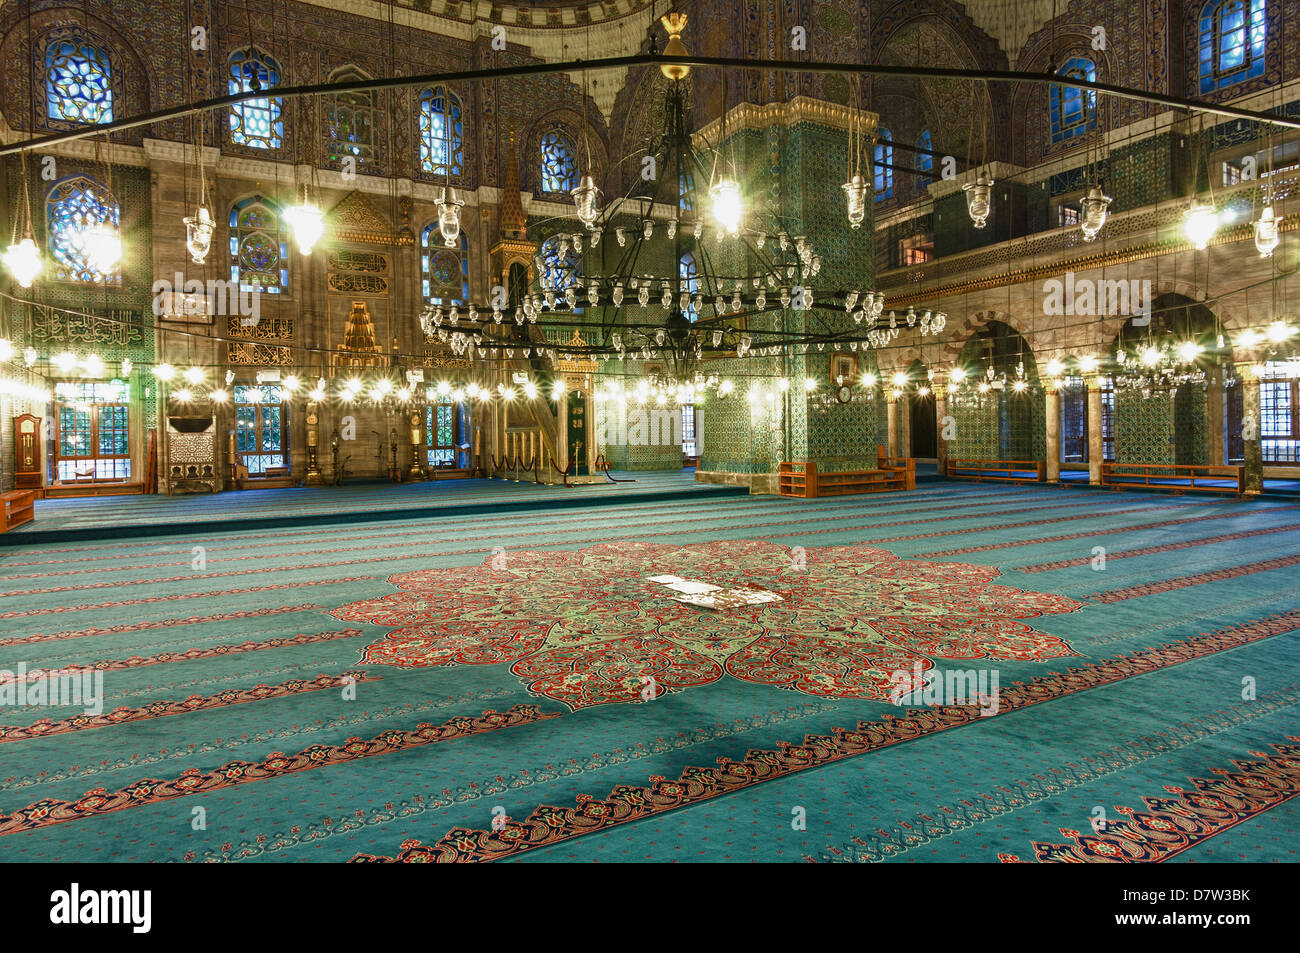 Interior of Yeni Cami (New Mosque), Istanbul Old city, Turkey - Stock Image